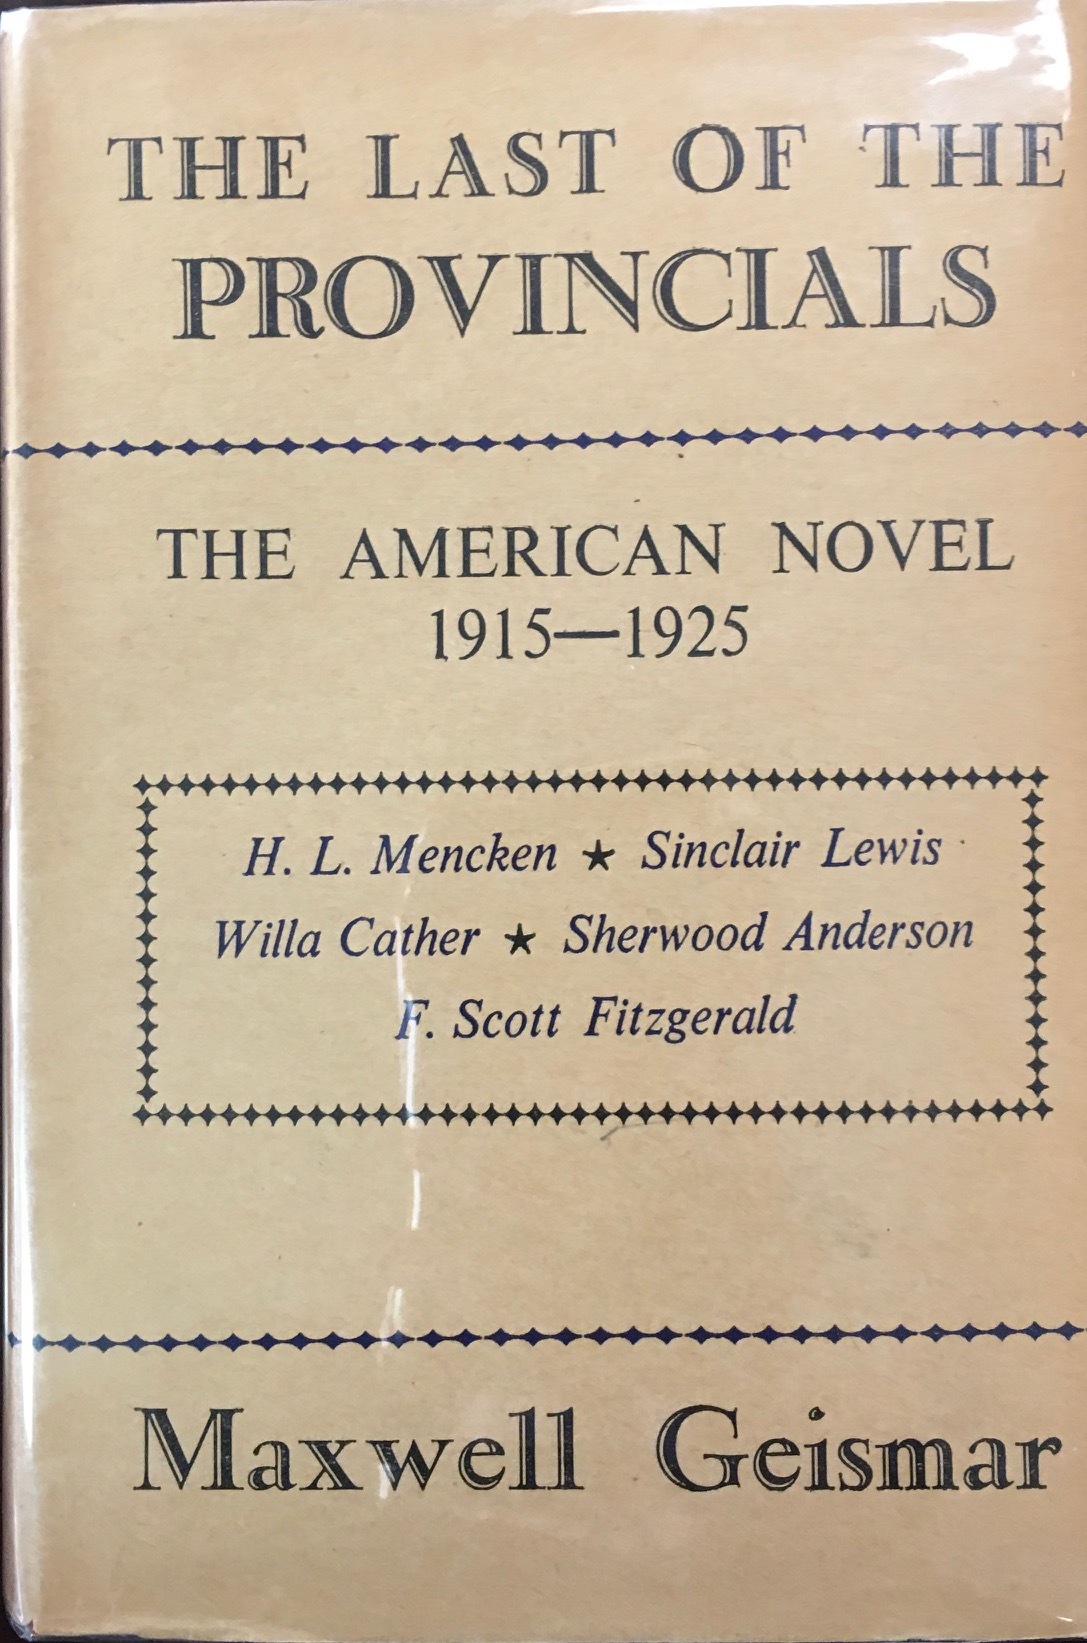 Image for The Last of the Provincials: The American Novel, 1915-1925 (H.L. Mencken / Sinclair Lewis / Willa Cather / Sherwood Anderson / F. Scott Fitzgerald)